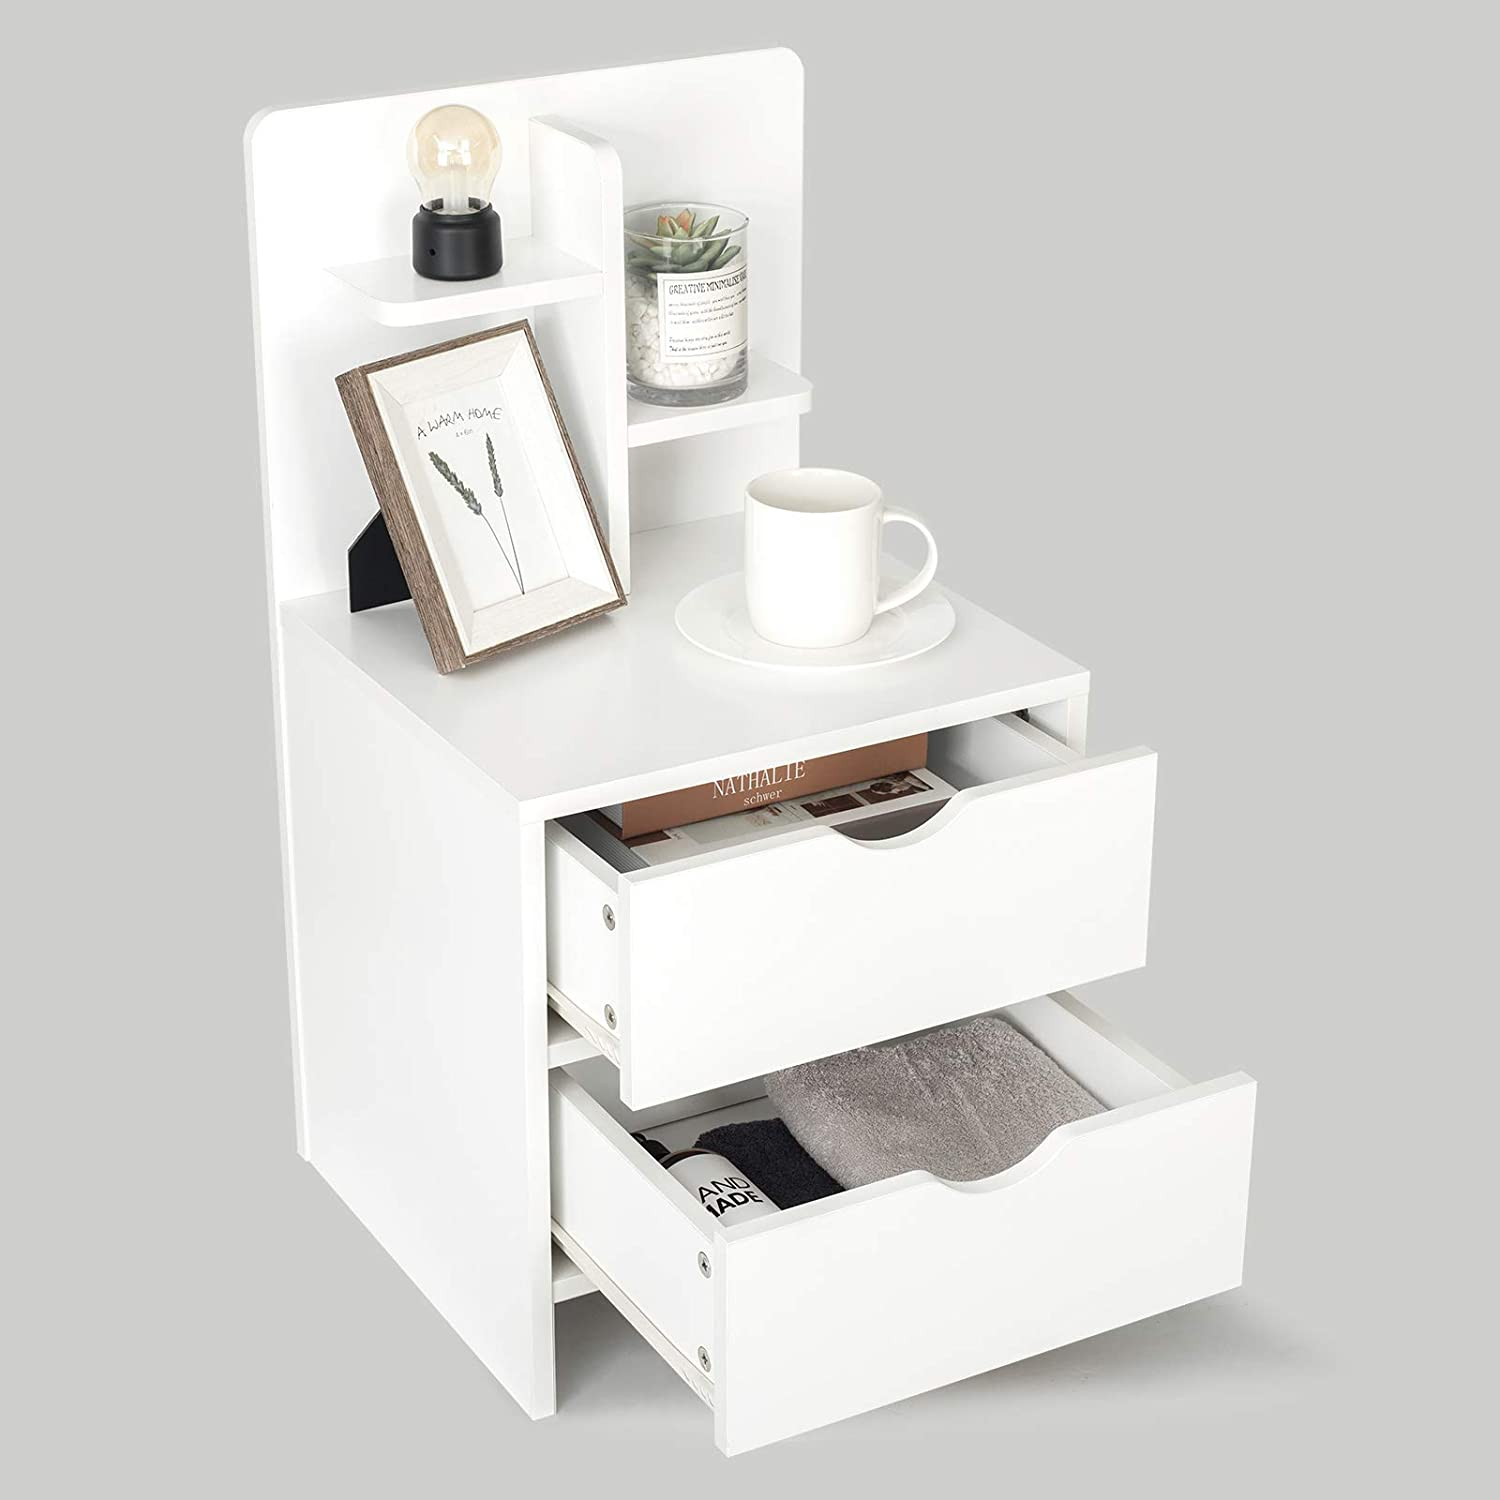 YUSING Nightstand Bedside 大好評です End Table Storage 2 Drawers 送料無料 一部地域を除く with She